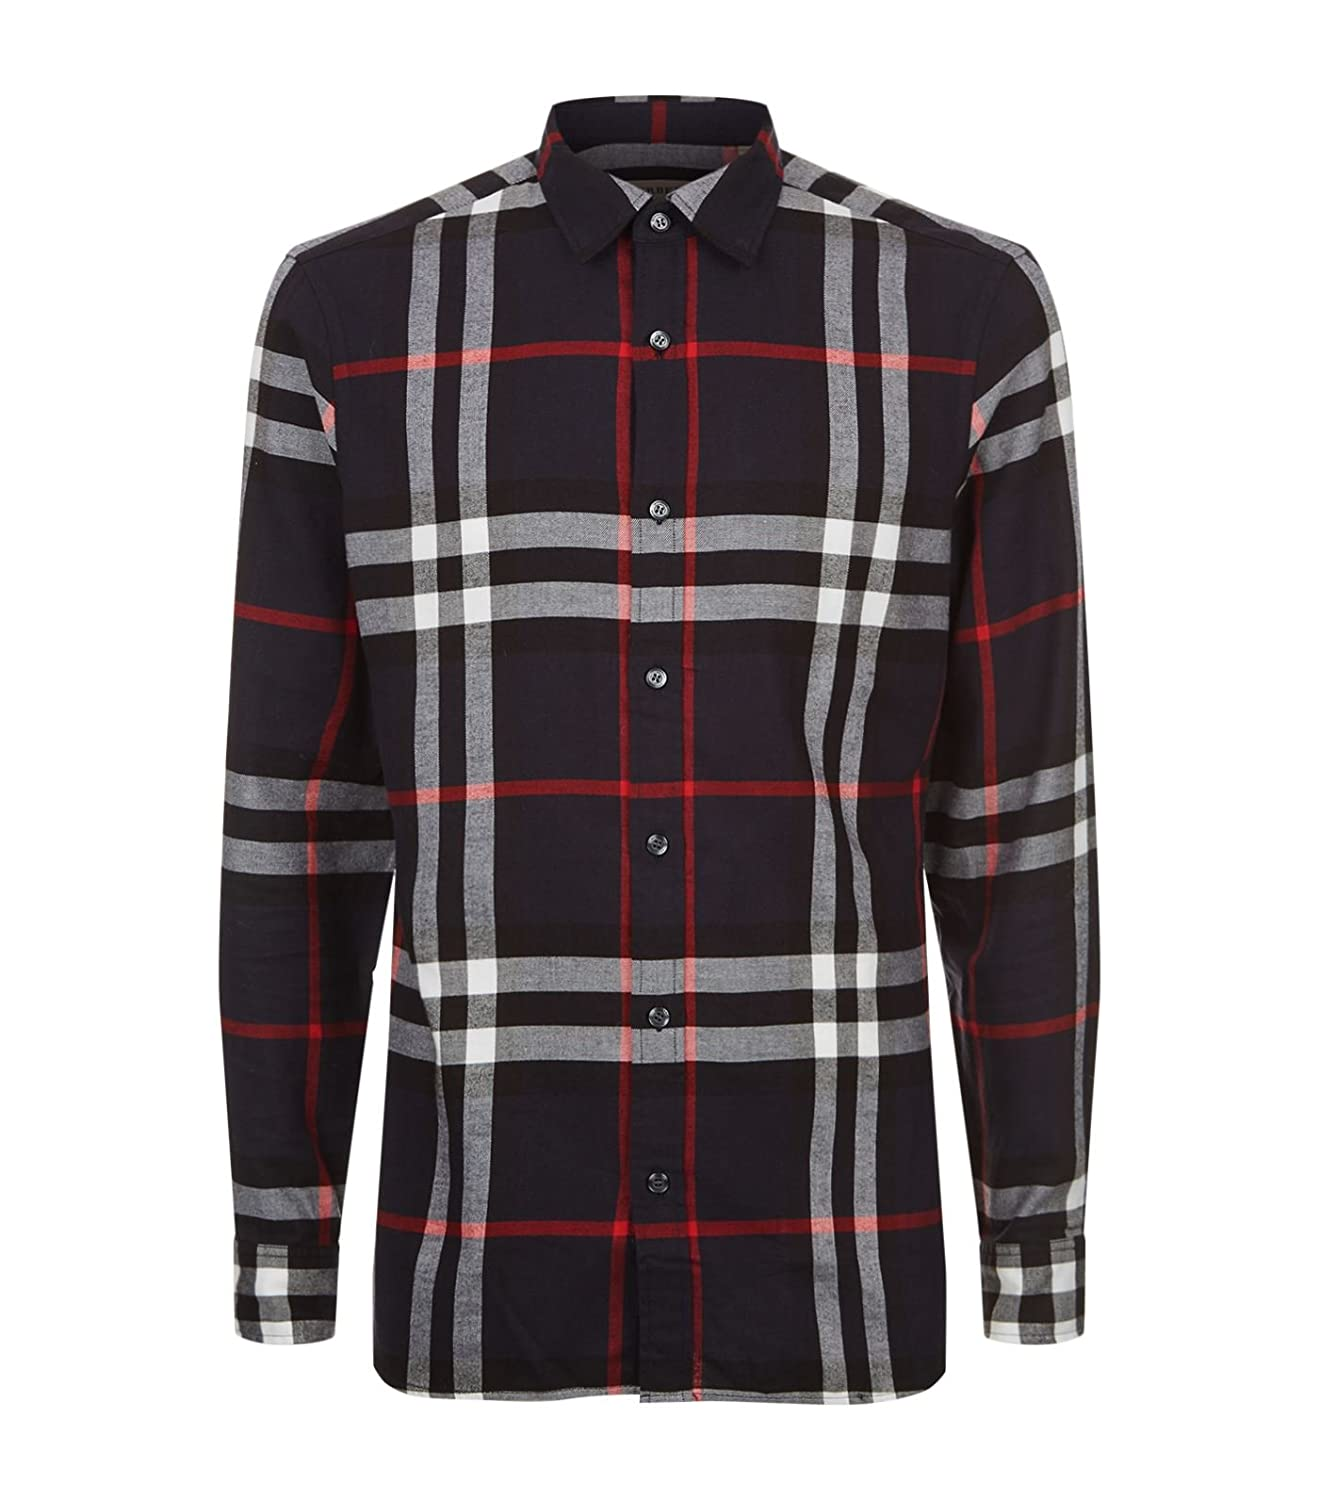 56046f9f BURBERRY Men's Salwick Flannel Blue Check Cuff Shirt (S) at Amazon Men's  Clothing store: